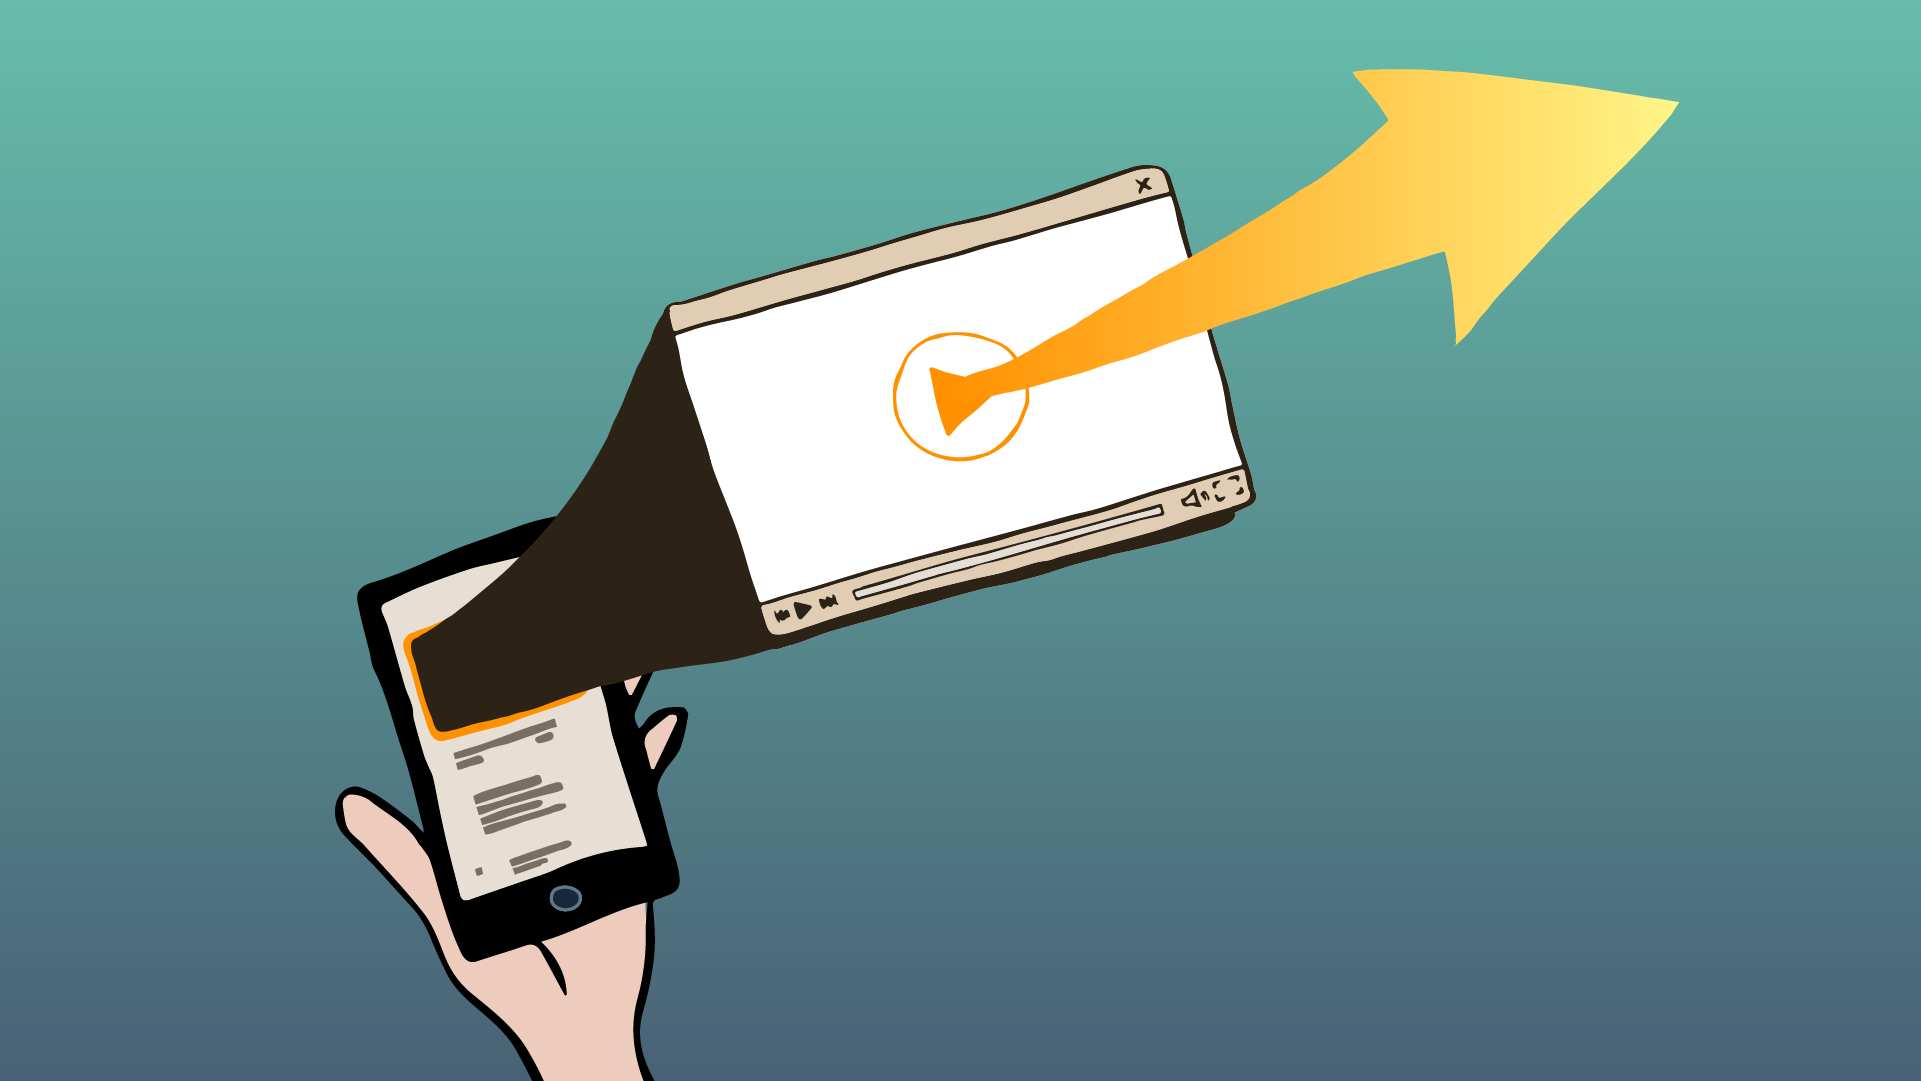 Illustrations_12_Blog_Video-explicative_Impactante-01